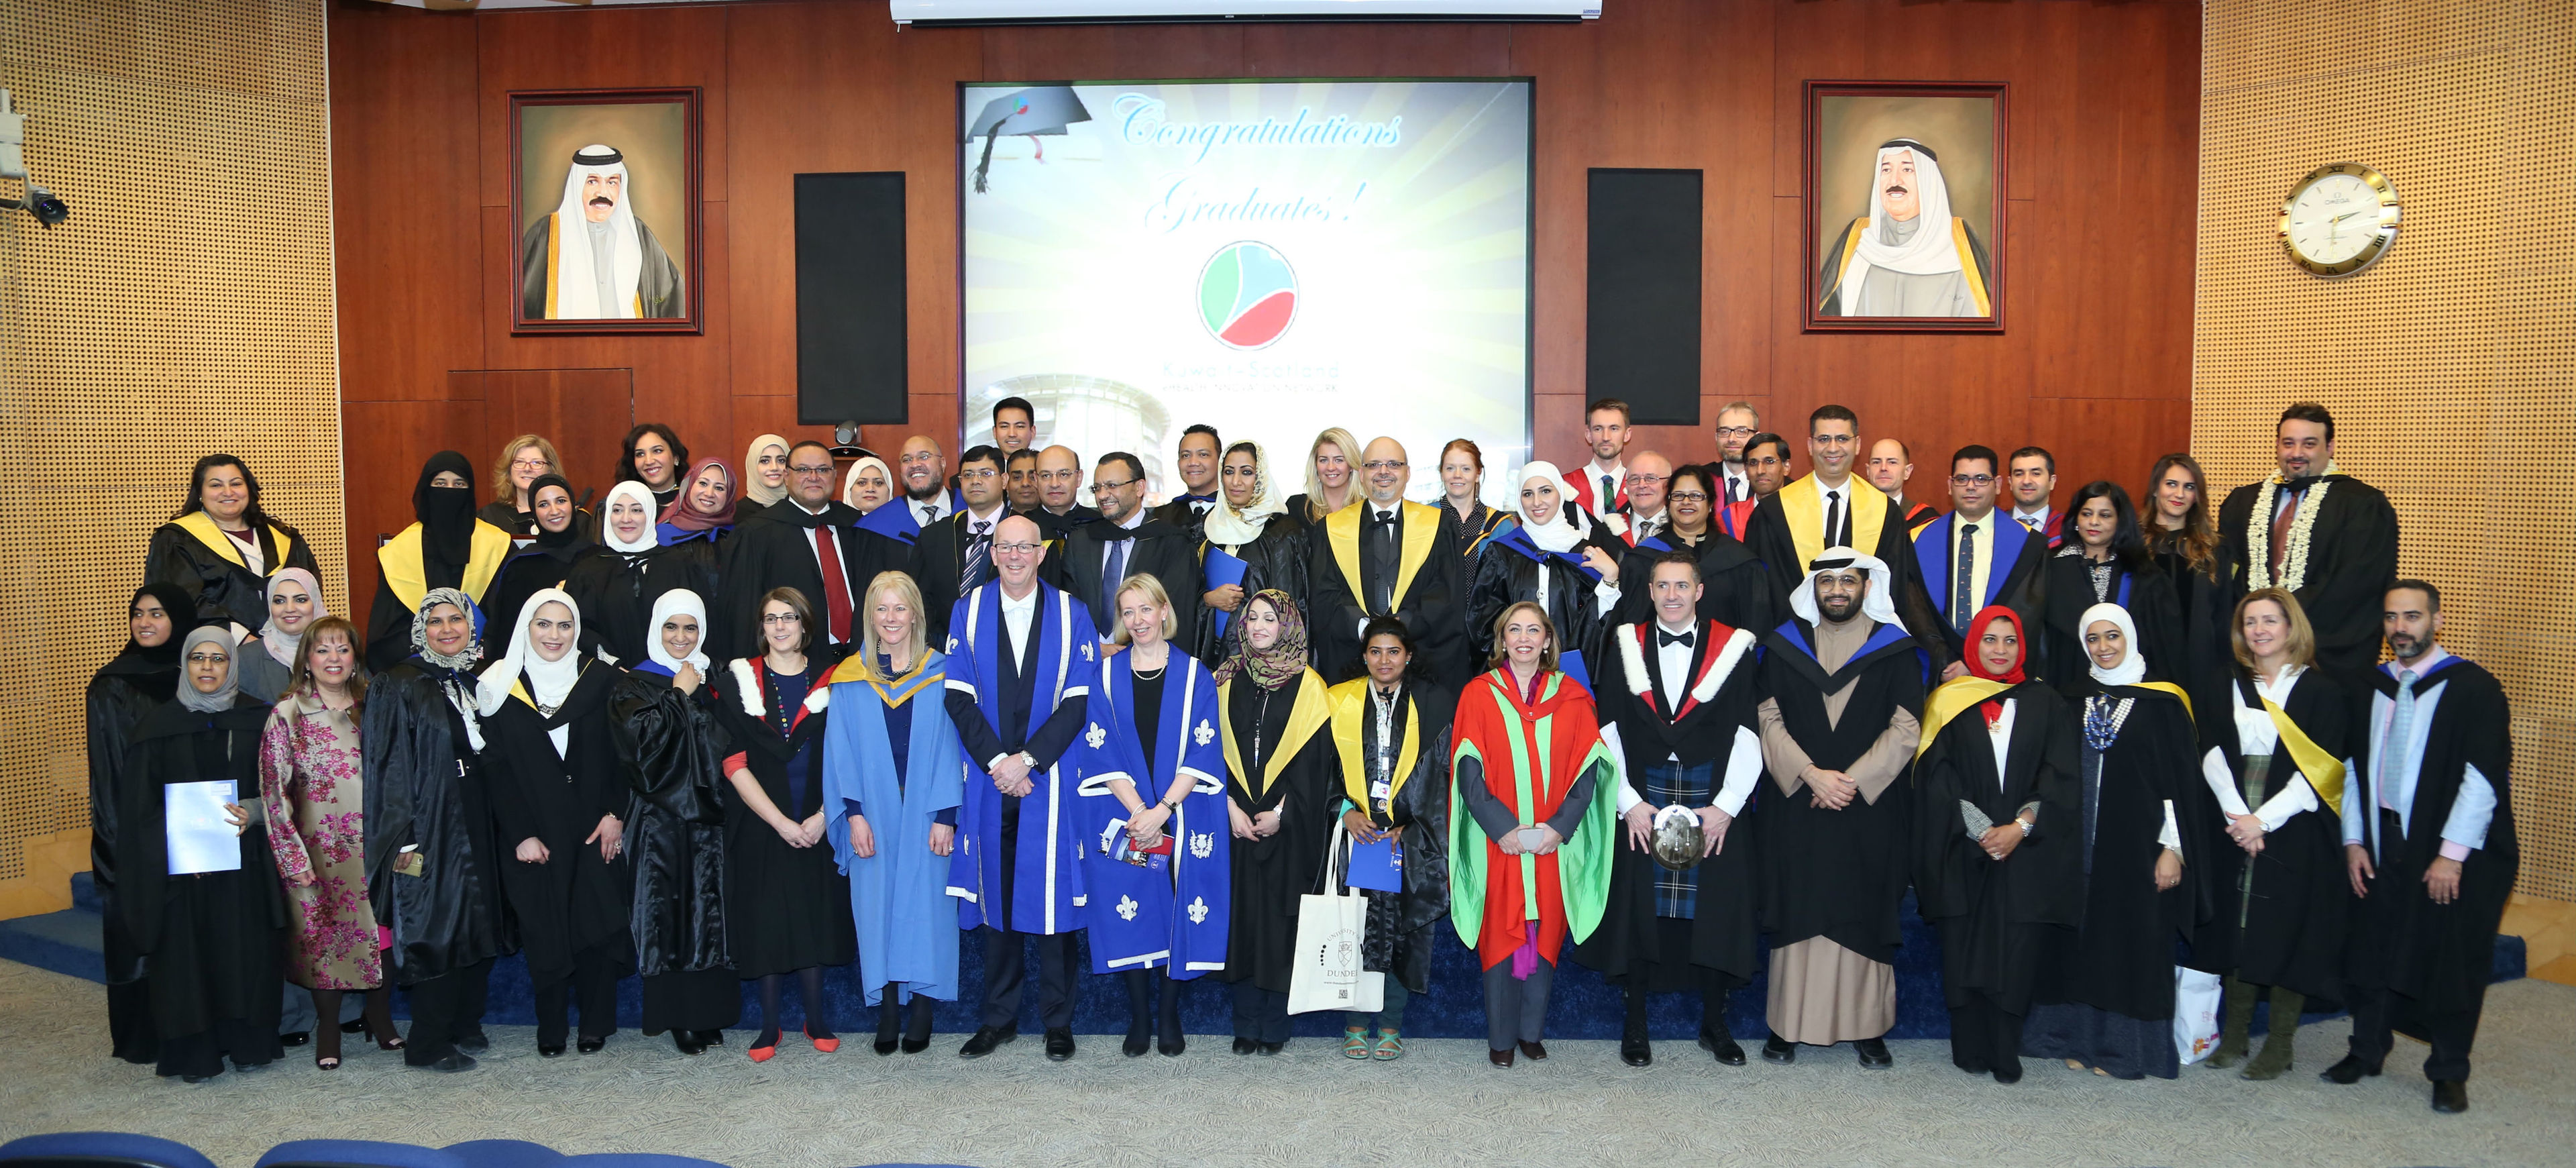 Graduates celebrating their degrees from Dundee University in Kuwait.